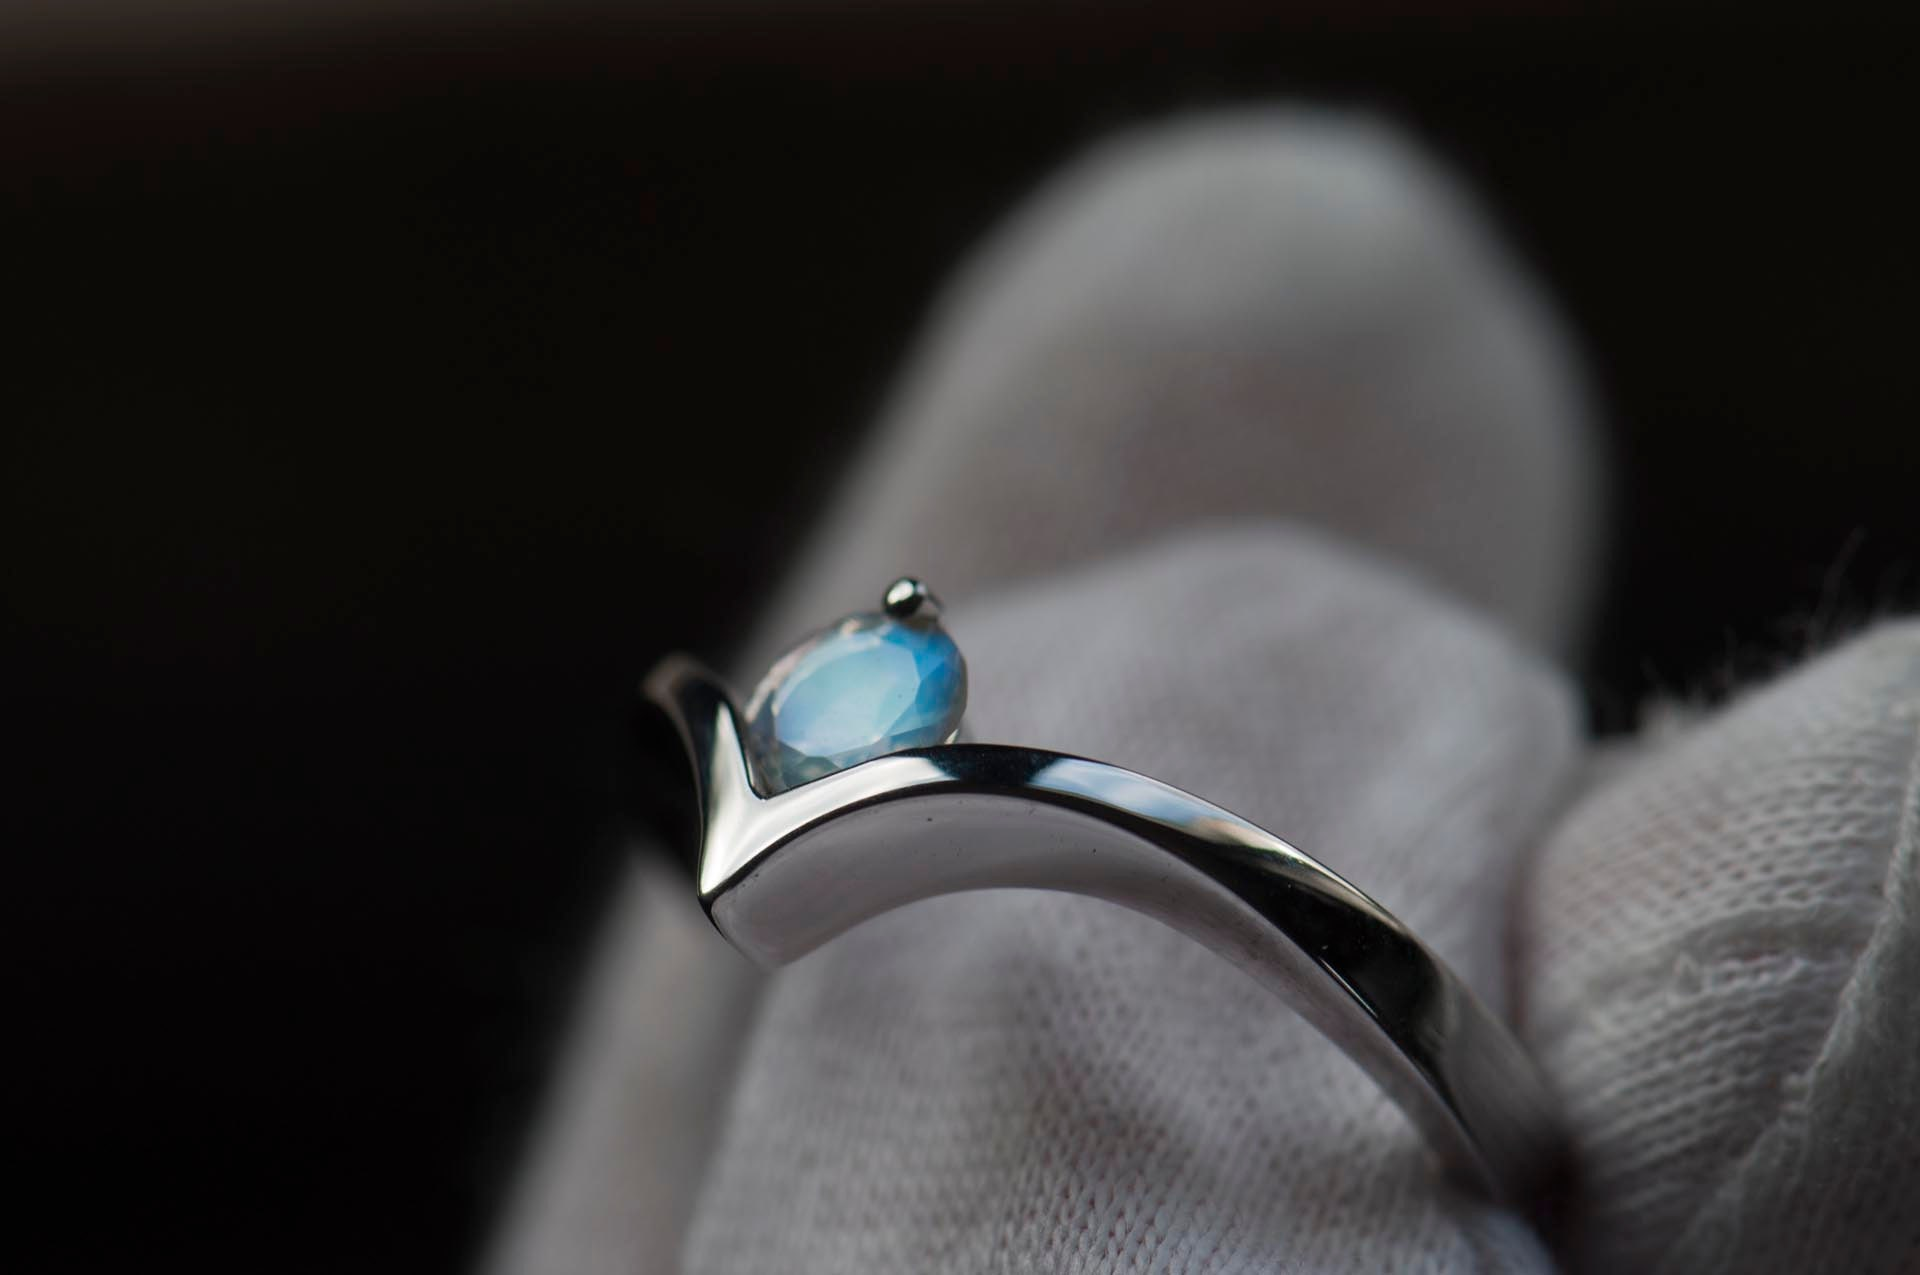 Blue moonstone set in a white gold ring